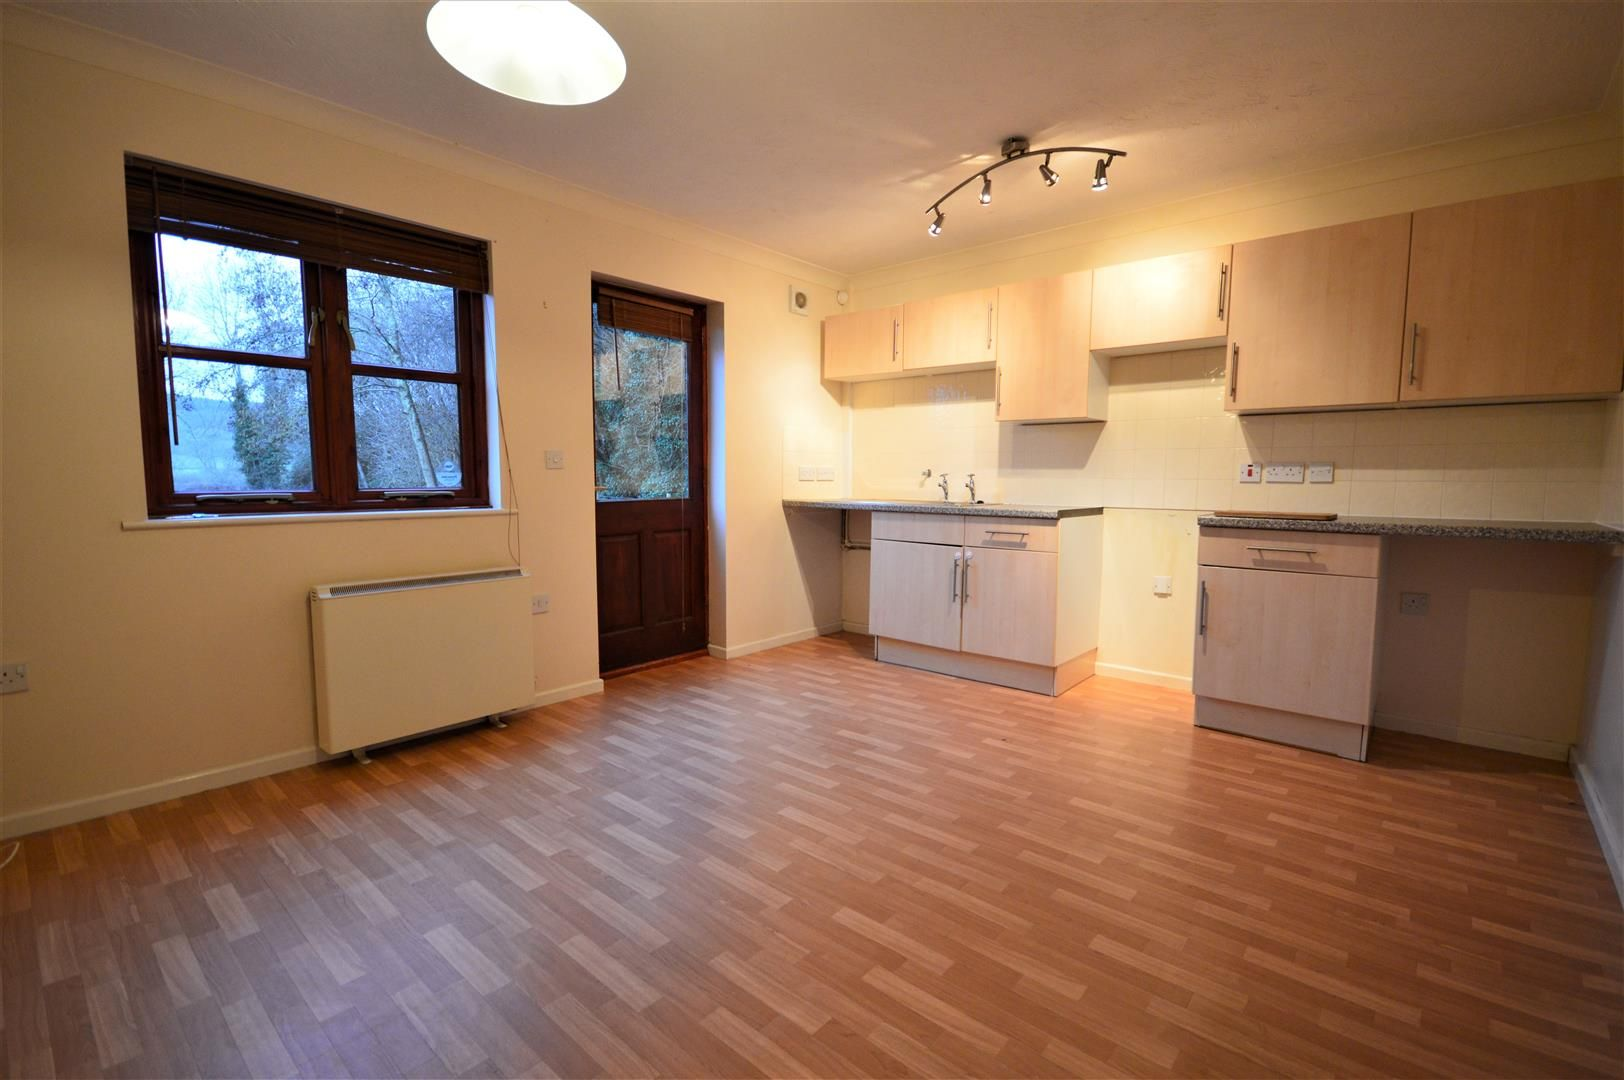 2 bed end-of-terrace to rent in Wigmore, HR6